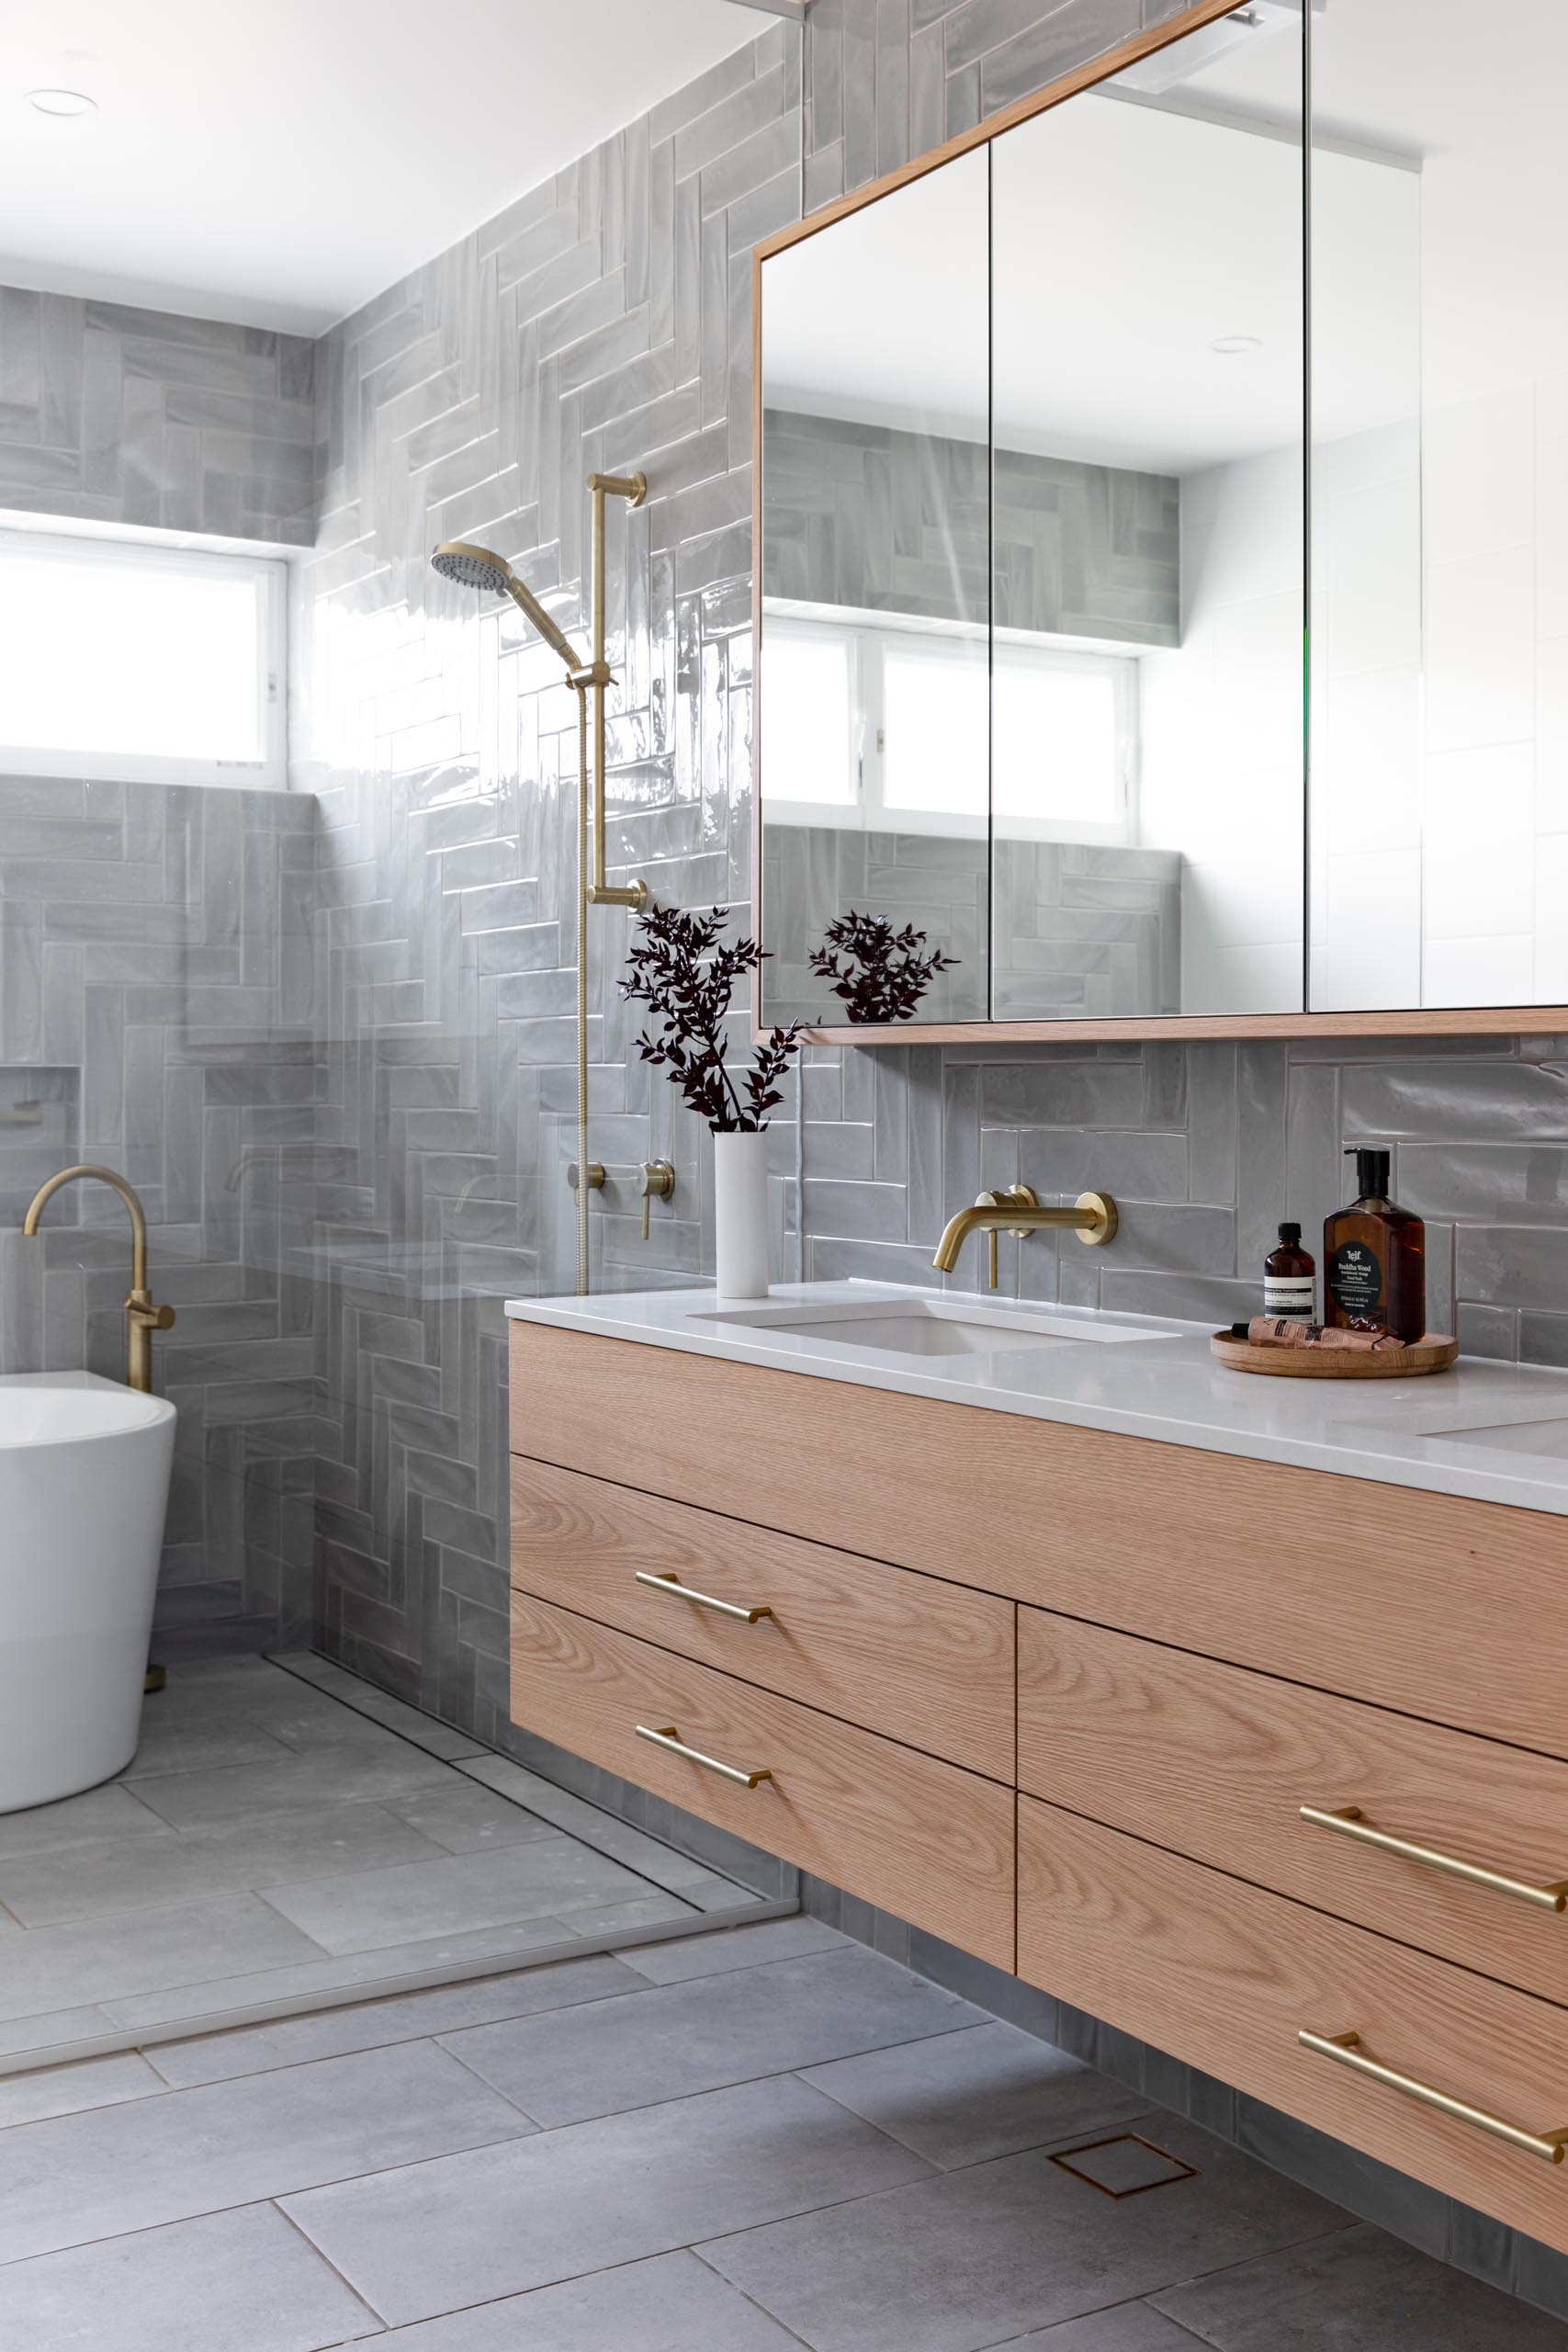 A modern bathroom with grey tiles installed in a herringbone pattern cover the wall, a floating wood vanity with a white countertop, and a glass shower screen that separates the shower and freestanding bathtub from the rest of the room.